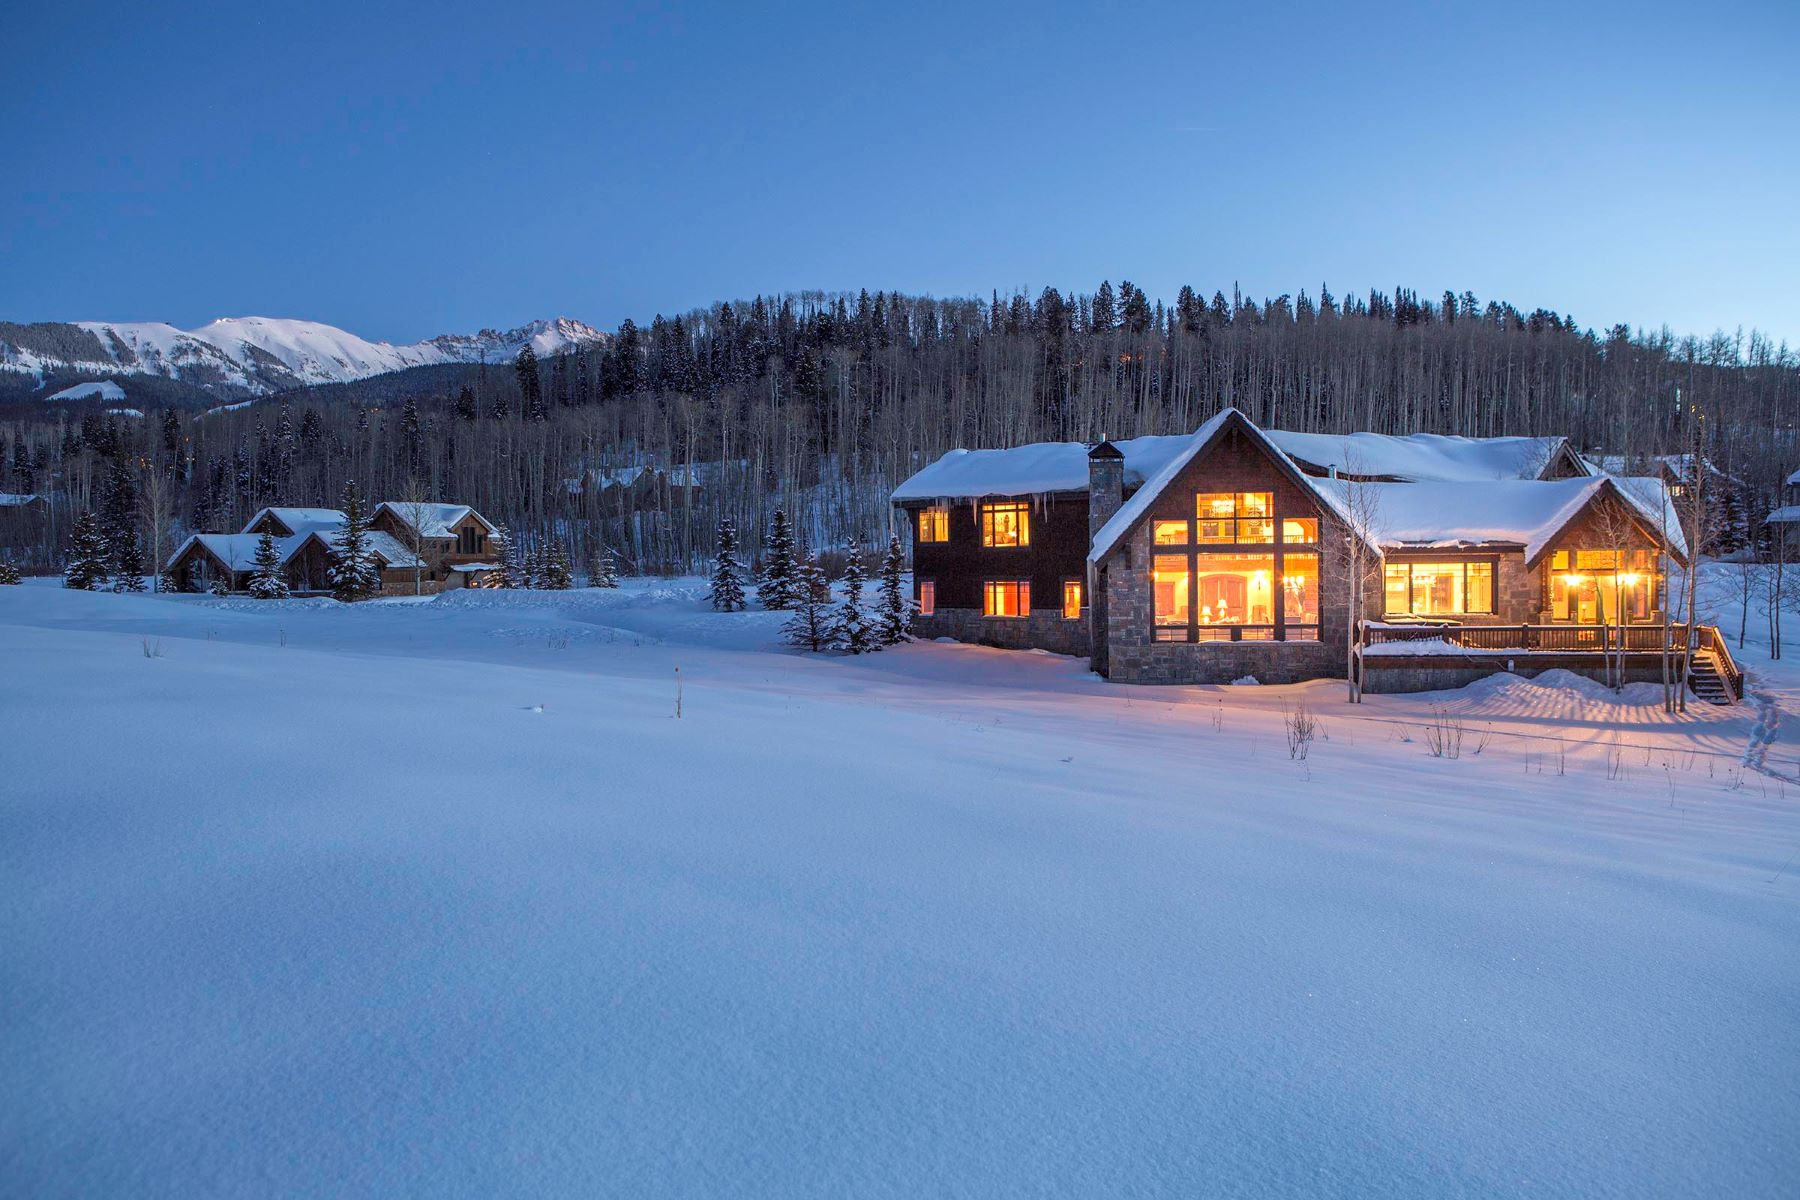 Single Family Home for Sale at 133 Russell Drive Telluride, Colorado, 81435 United States